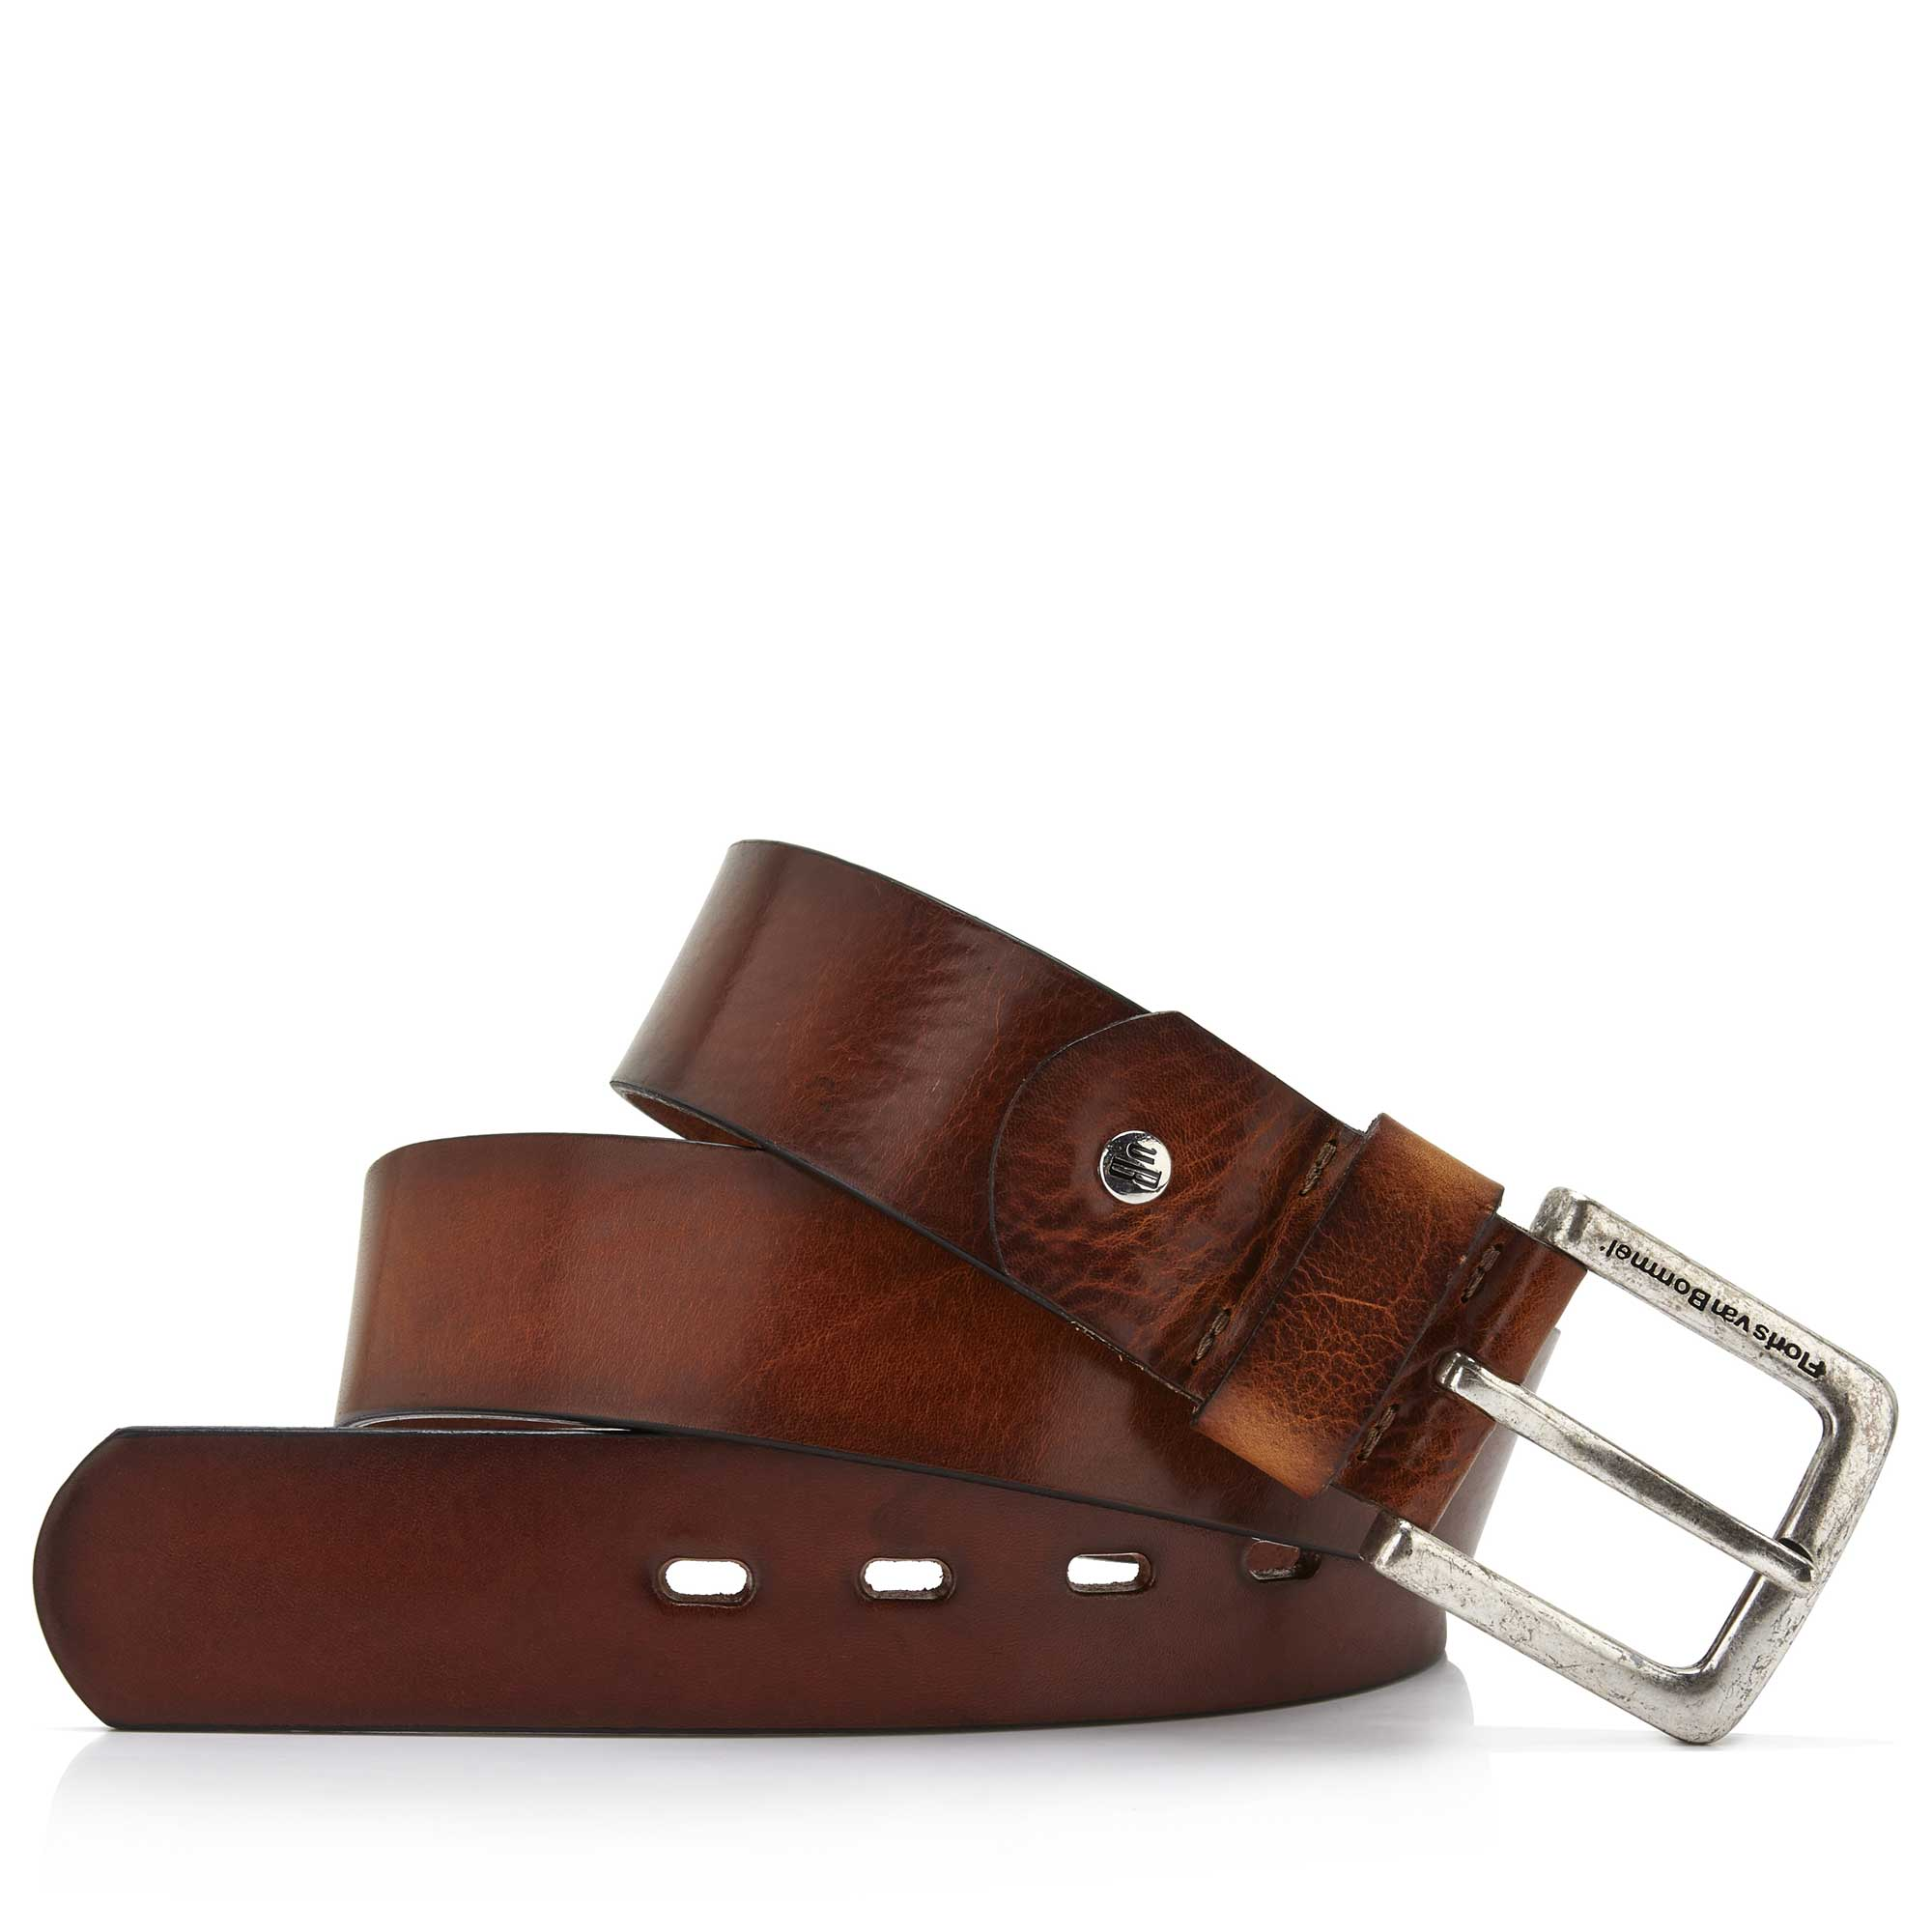 75045/00 - Medium brown leather belt